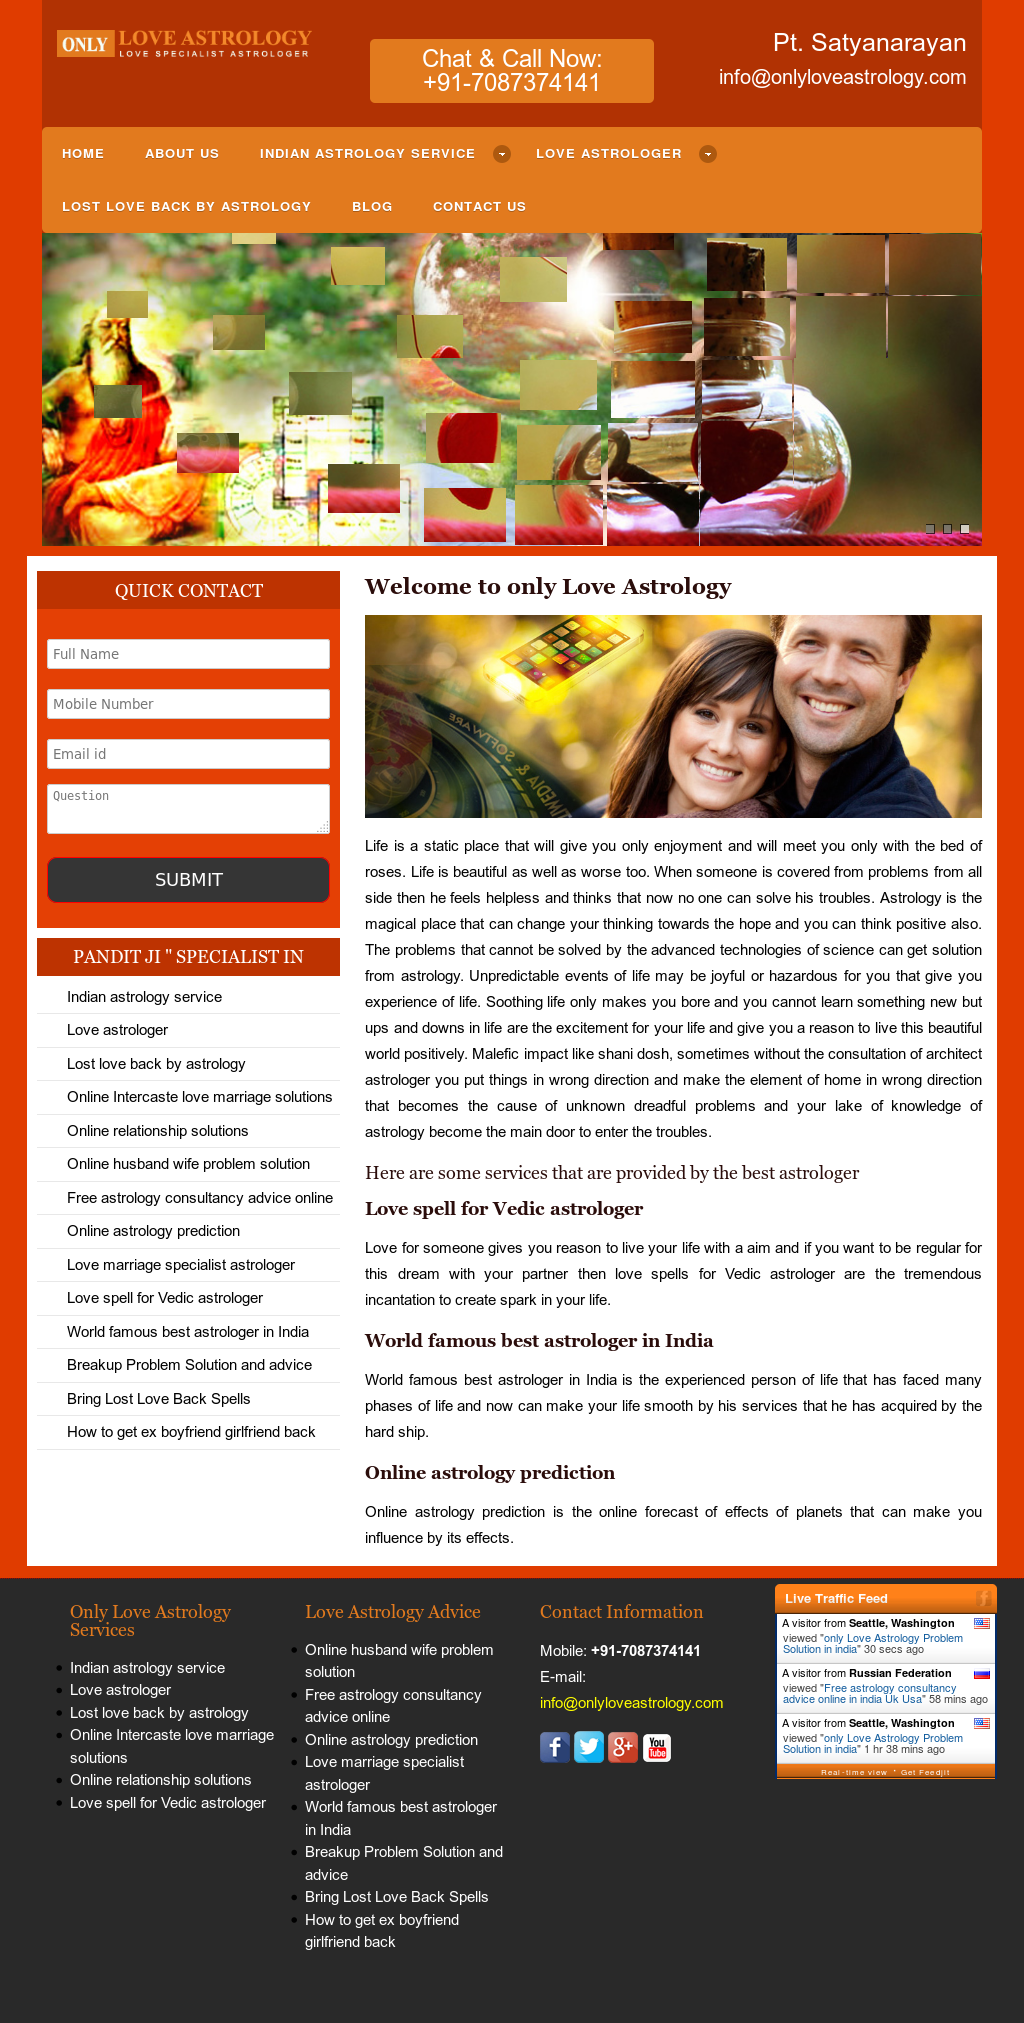 Onlyloveastrology Competitors, Revenue and Employees - Owler Company